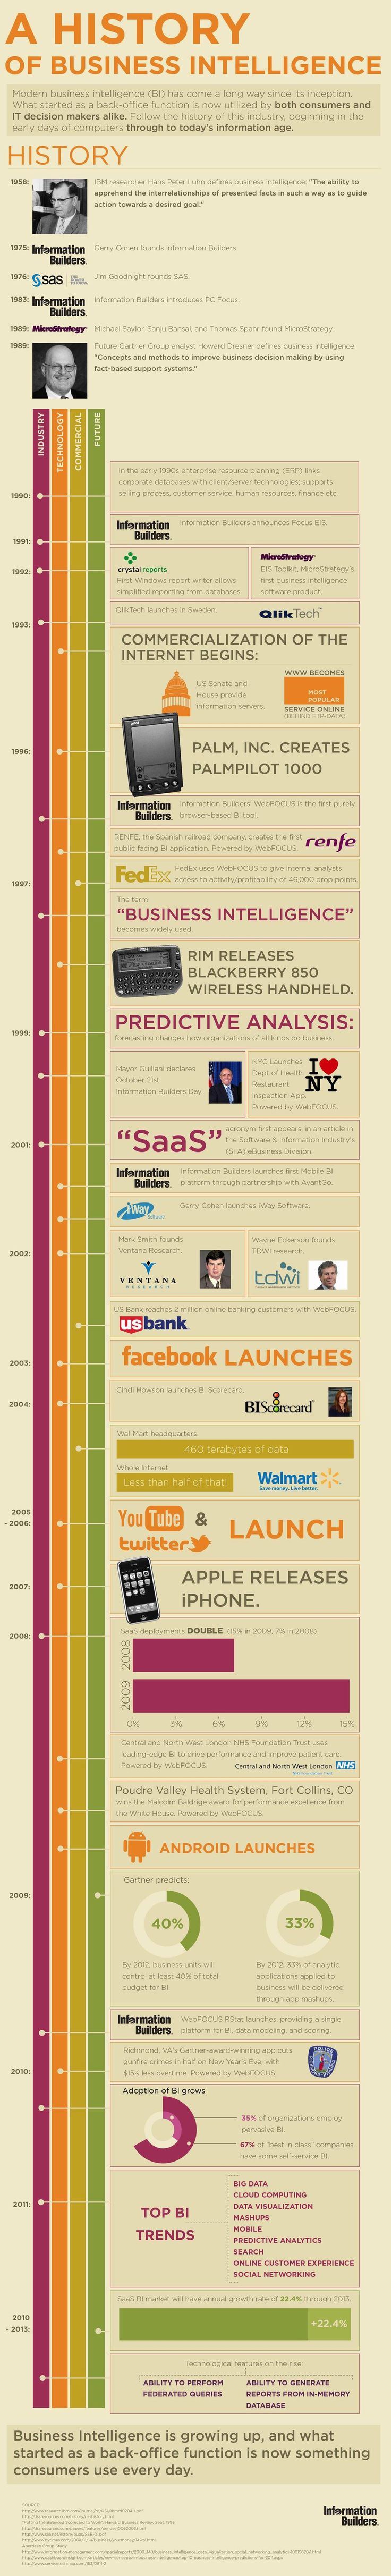 Business Intelligence has received a lot of attention in recent years and appears to be a new thought component in business, but in reality it has been around for decades. This infographic takes us through the BI timeline.